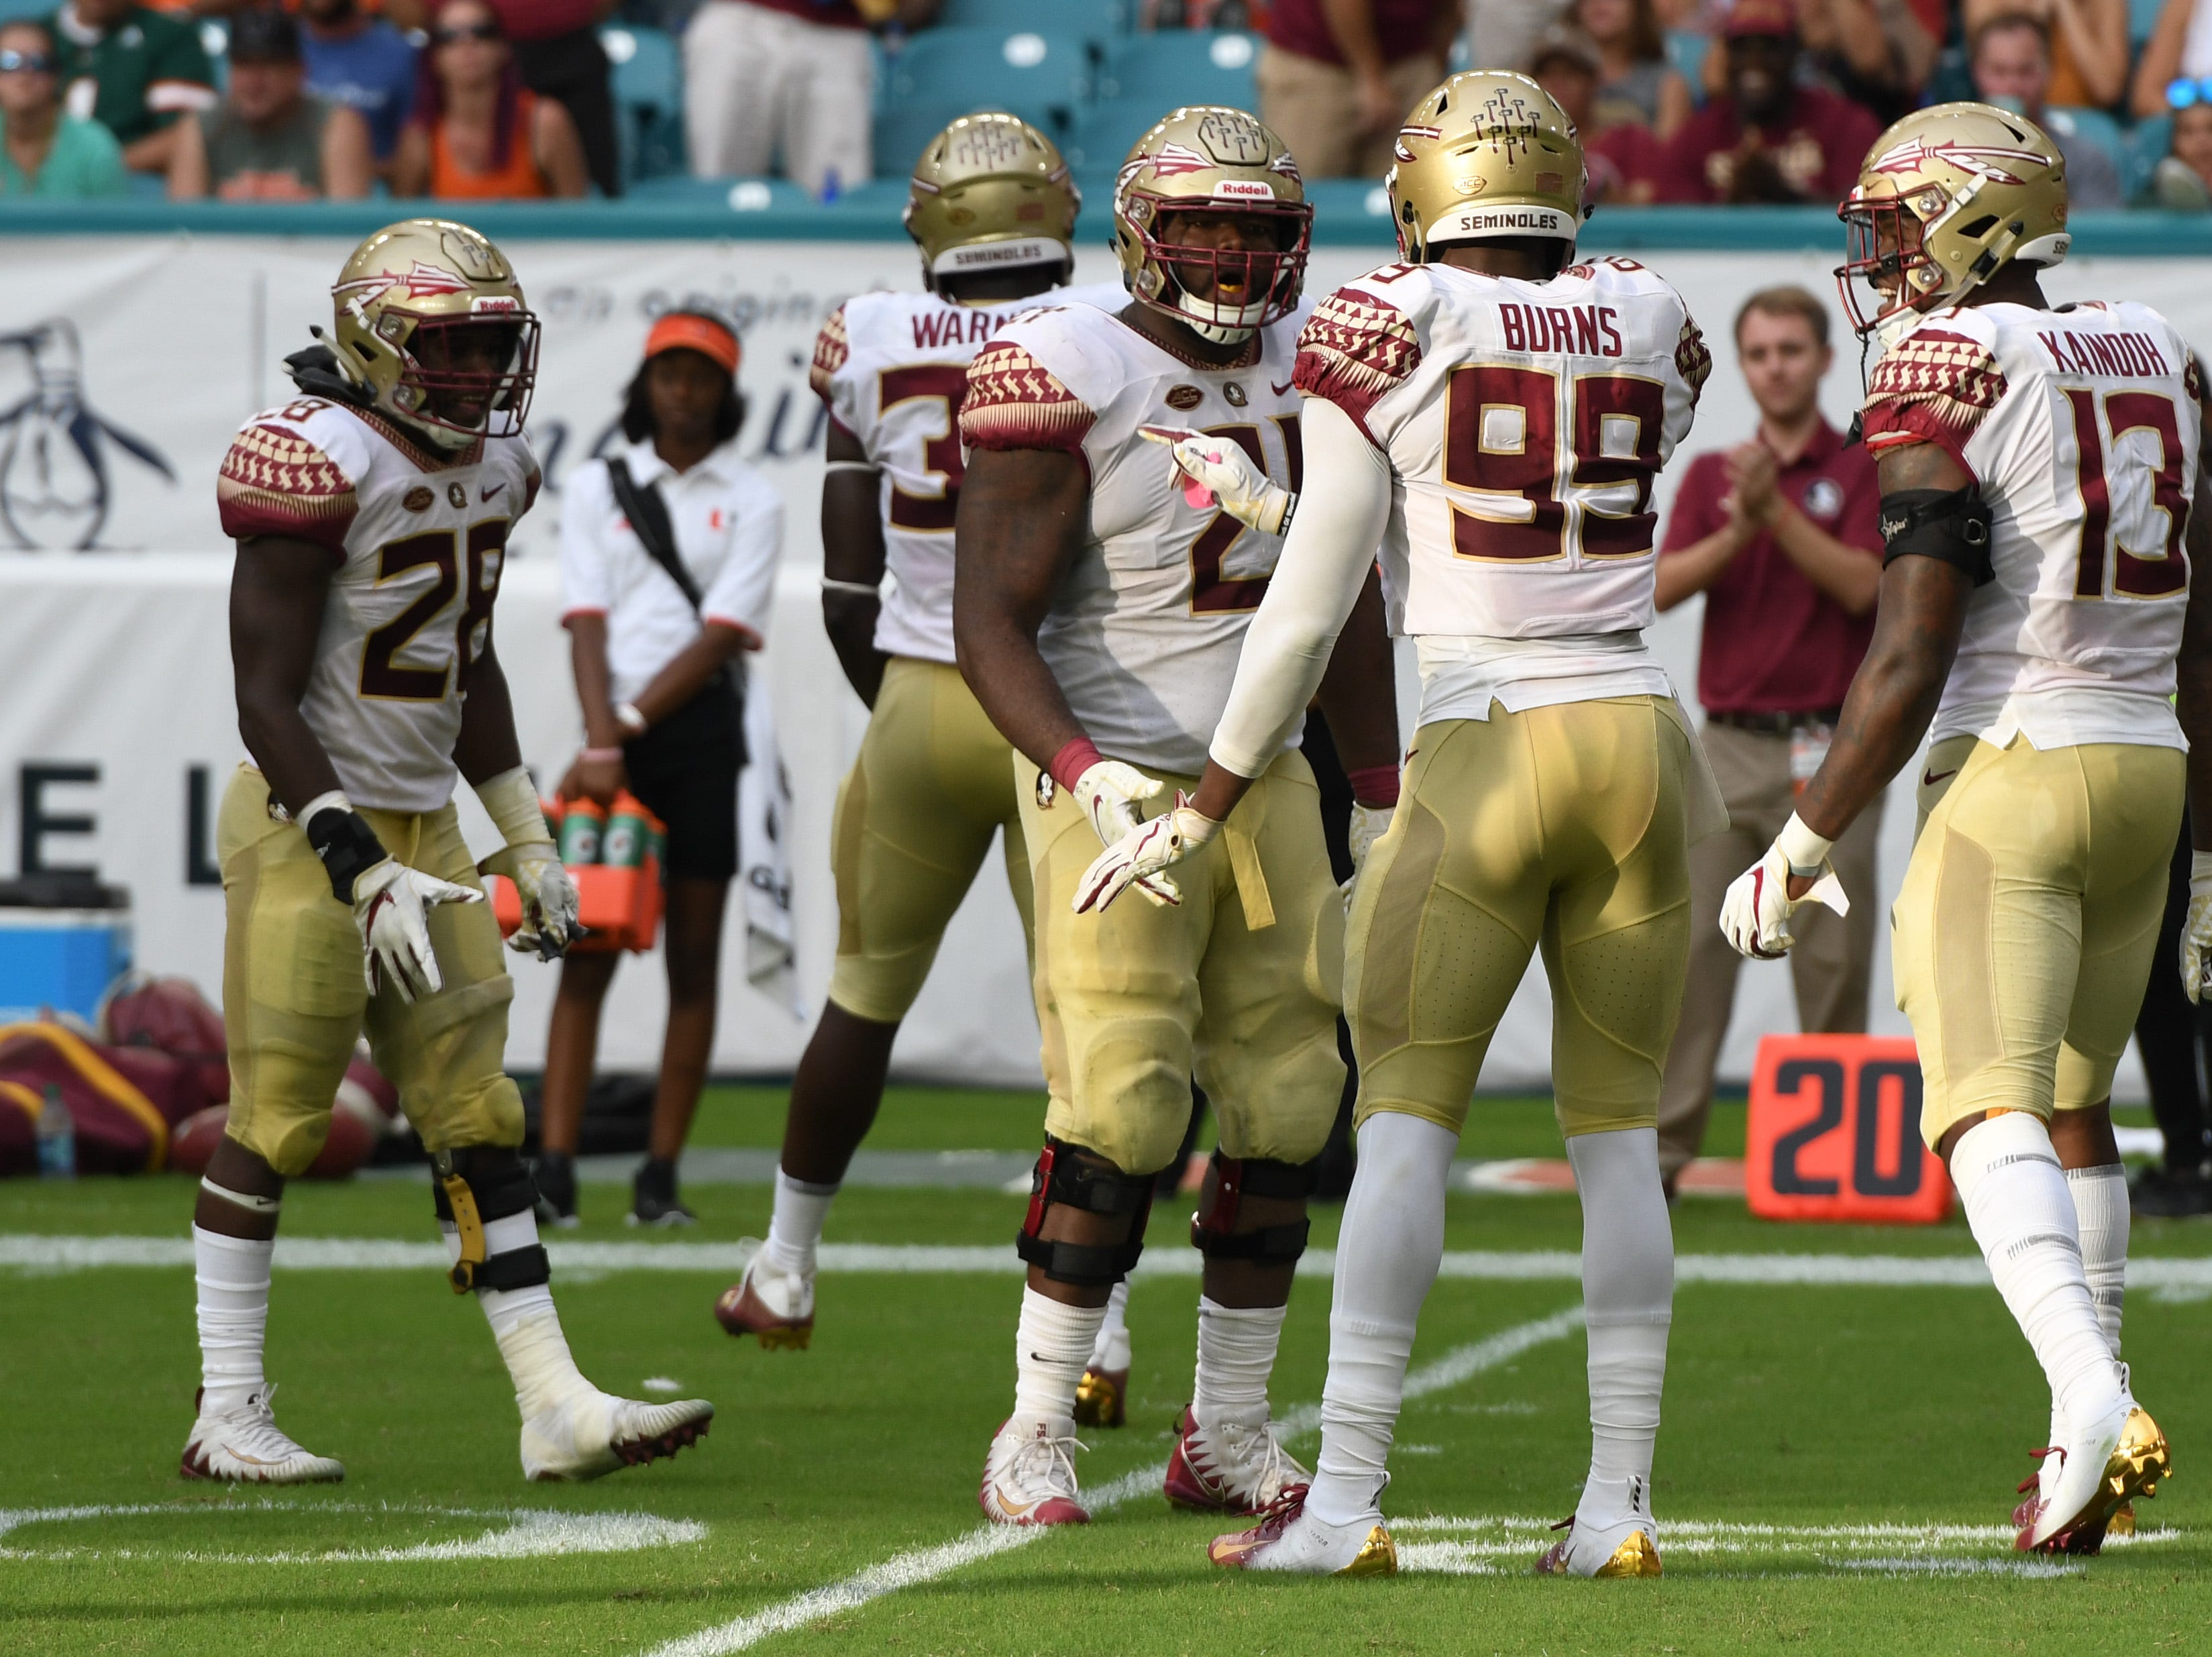 FSU sophomore noseguard Marvin Wilson (21) celebrating with his teammates after sacking the quarterback during the third quarter of FSU's game against Miami at the Hard Rock Stadium on October 6th 2018.